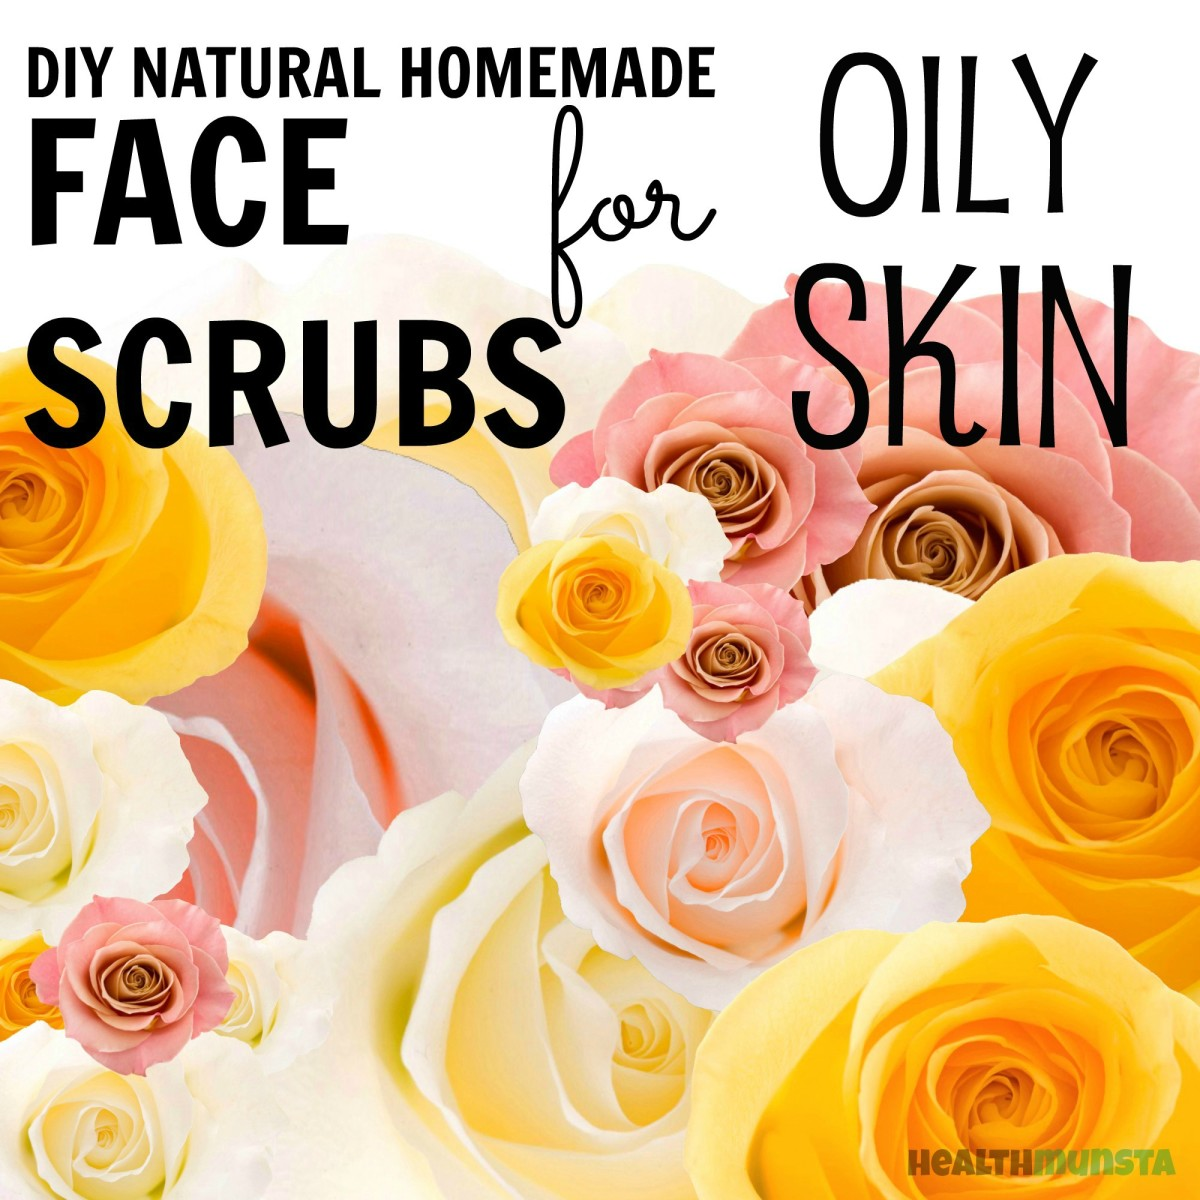 Diy Volcanic Acne And Skin Cleansing Face Mask: DIY Homemade Face Scrub Recipes For Oily Skin